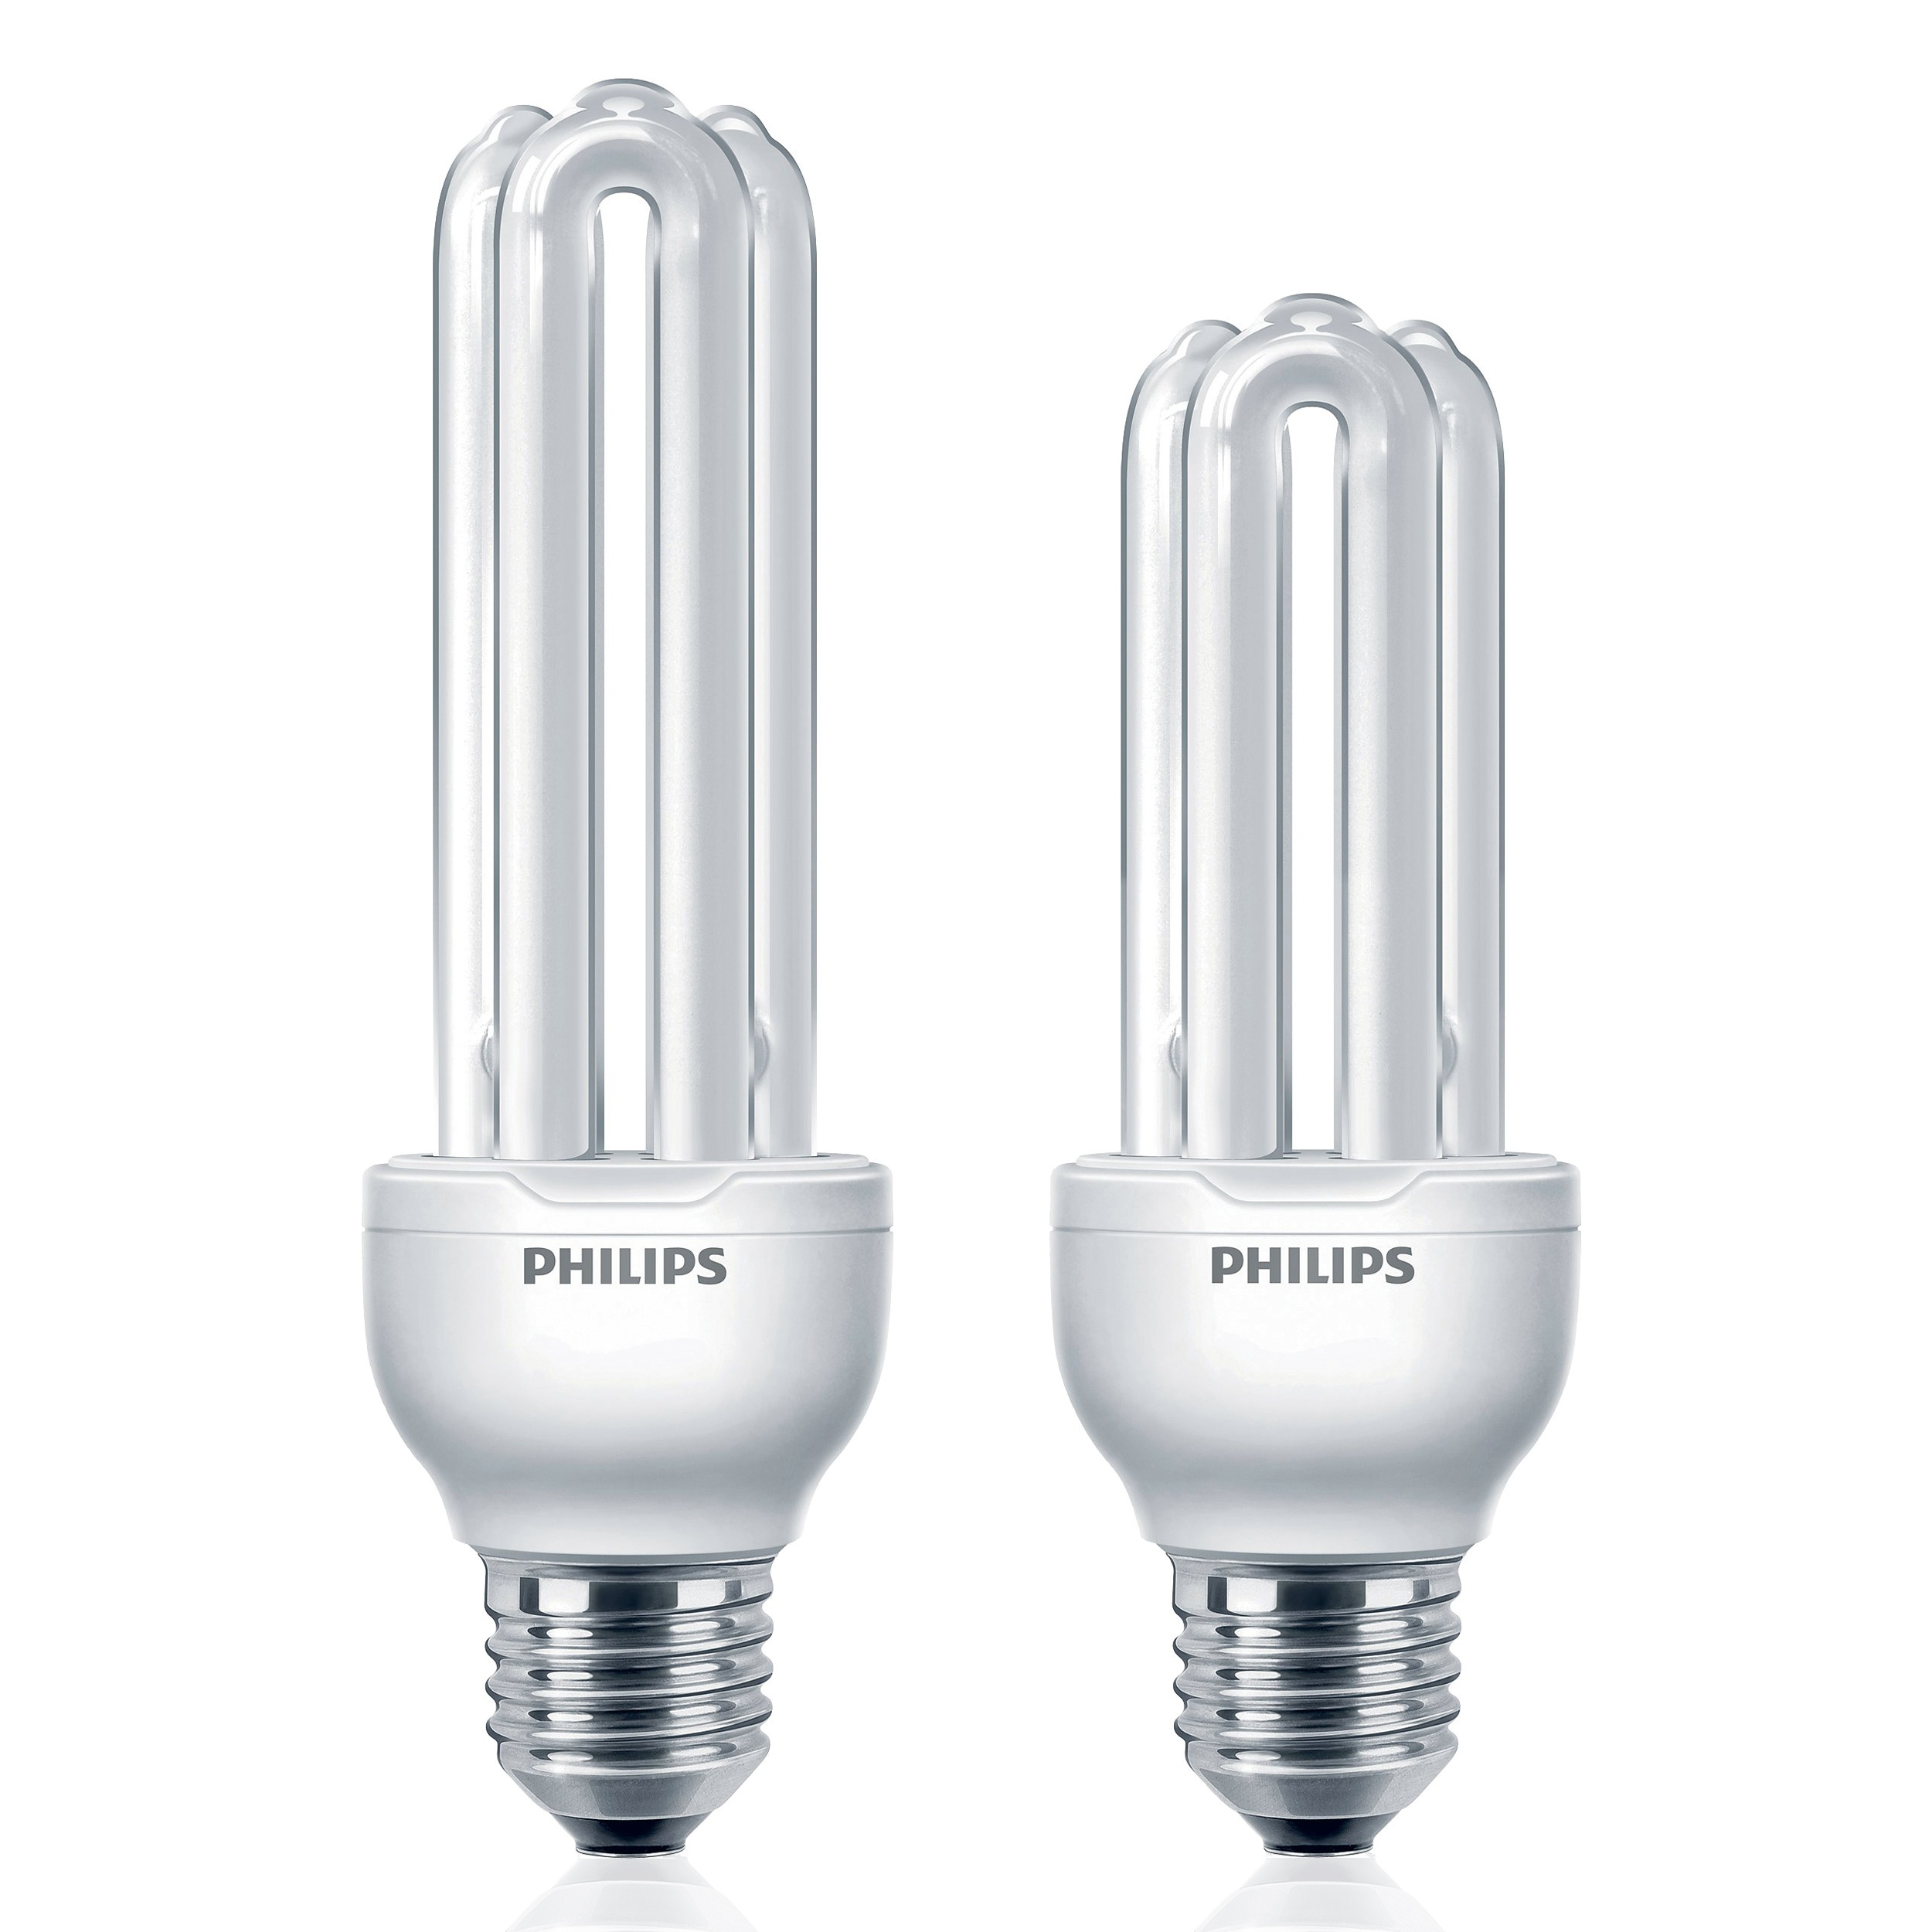 Philips 11w 23w Energy Saving Light Bulbs B22 E27 Fittings